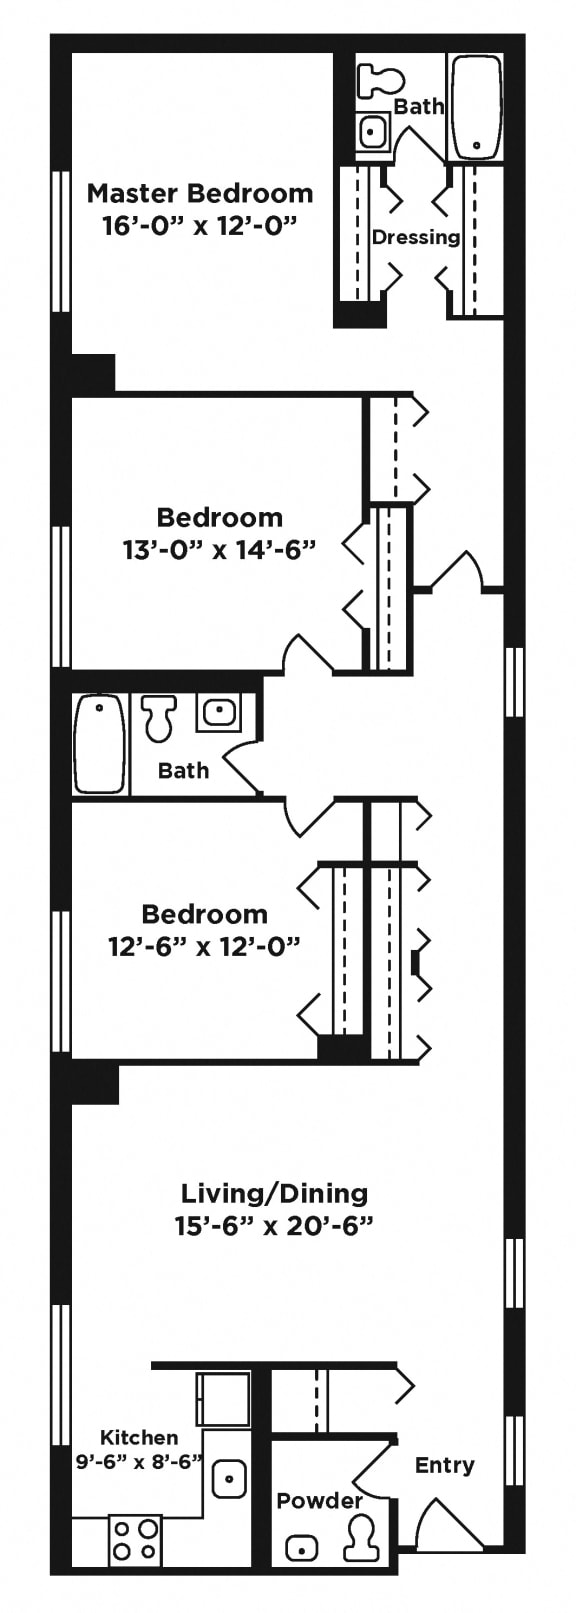 Floor Plan  3 bedroom apartment at Webster Hall in Pittsburgh, PA